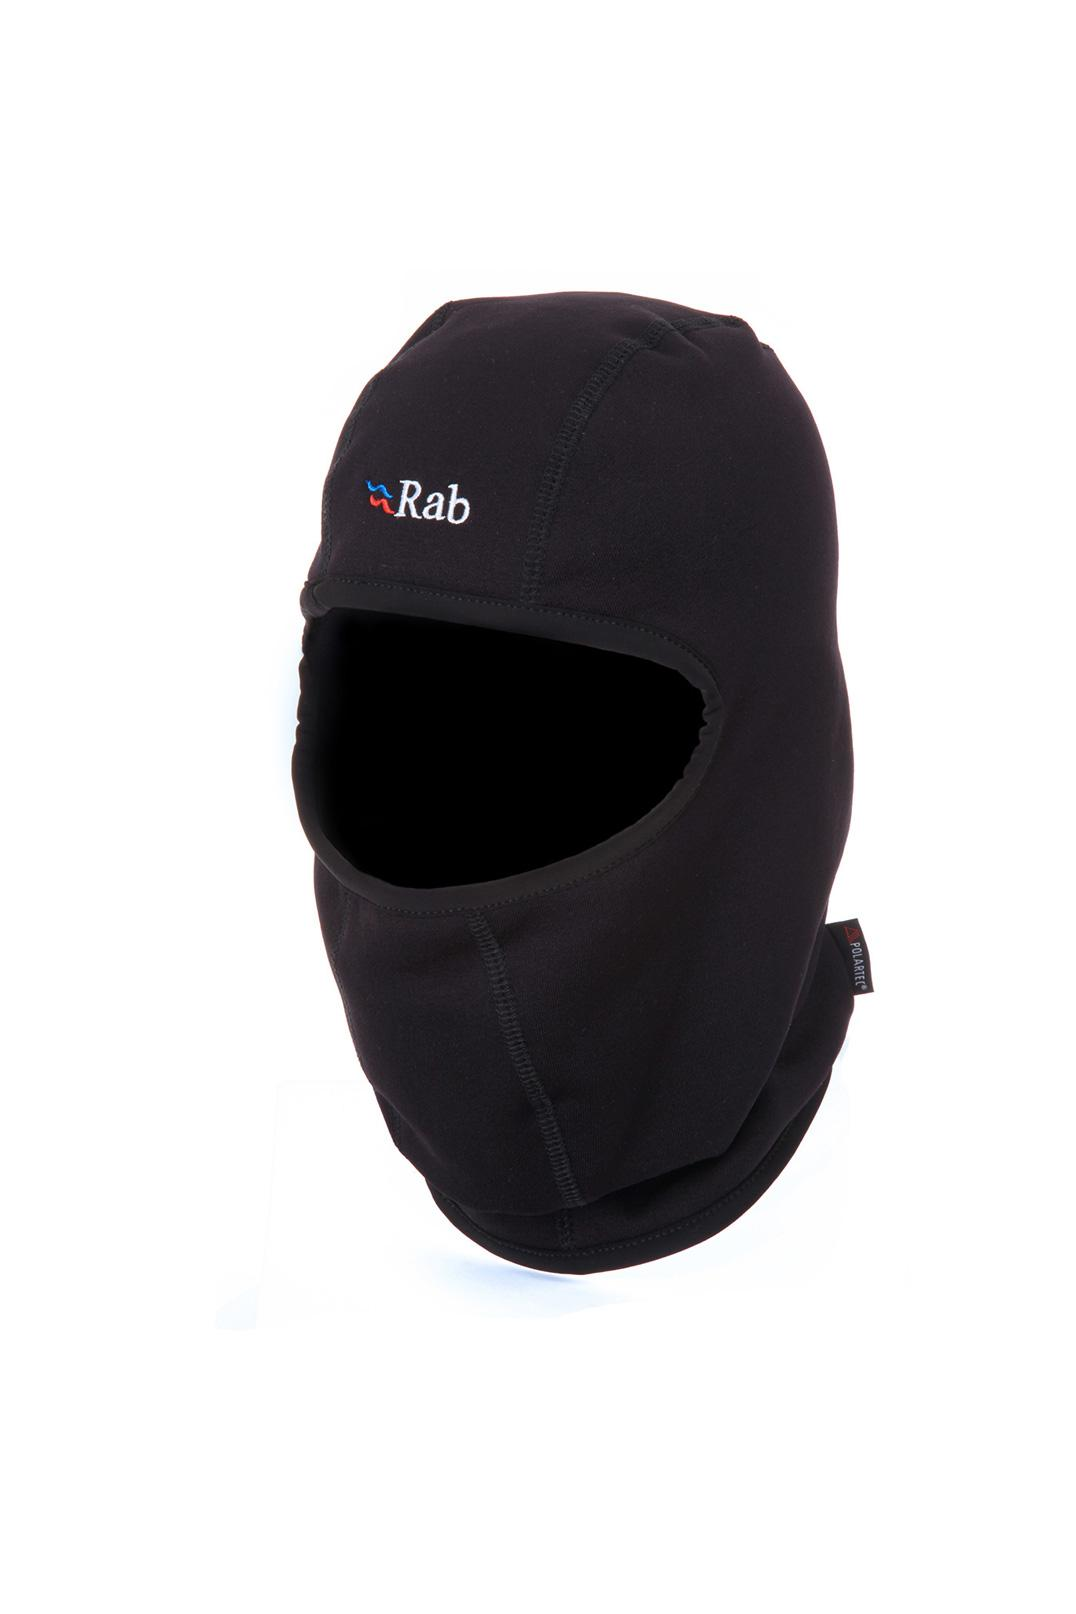 RAB Balaclava Power Stretch Pro